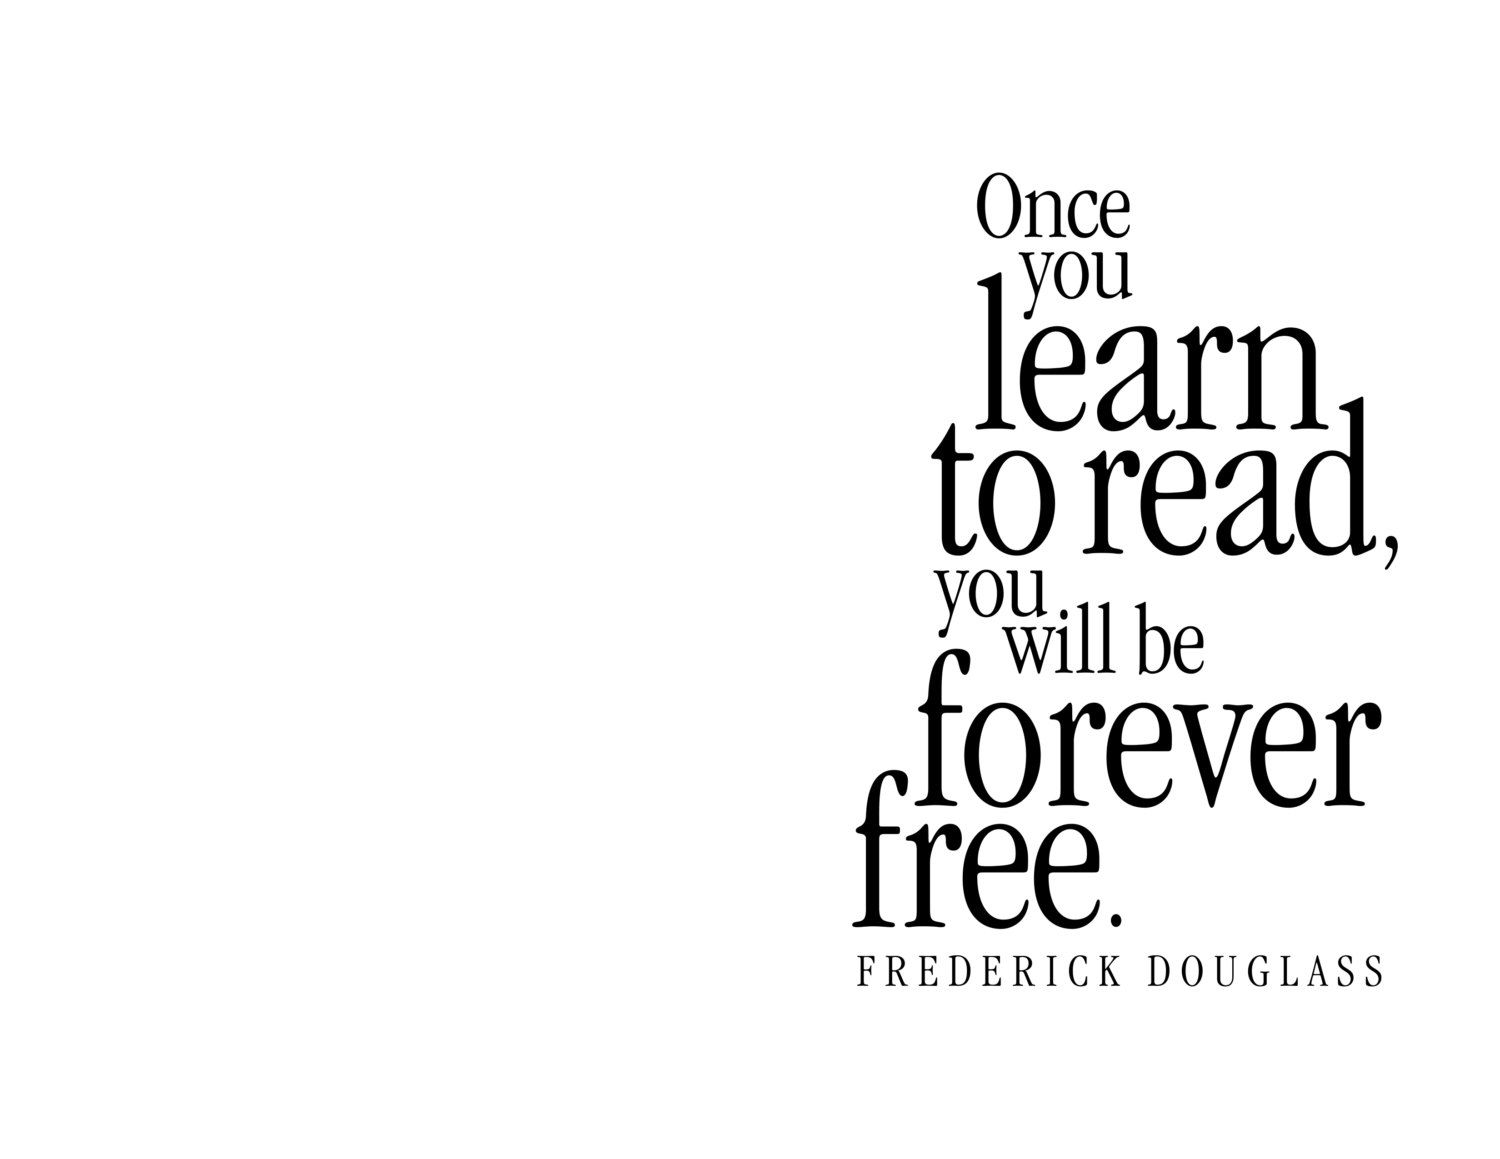 Graduation Greeting Card Once You Learn To Read You Will Be Forever Free Frederick Douglass Moder Graduation Greetings Original Greeting Card Learn To Read